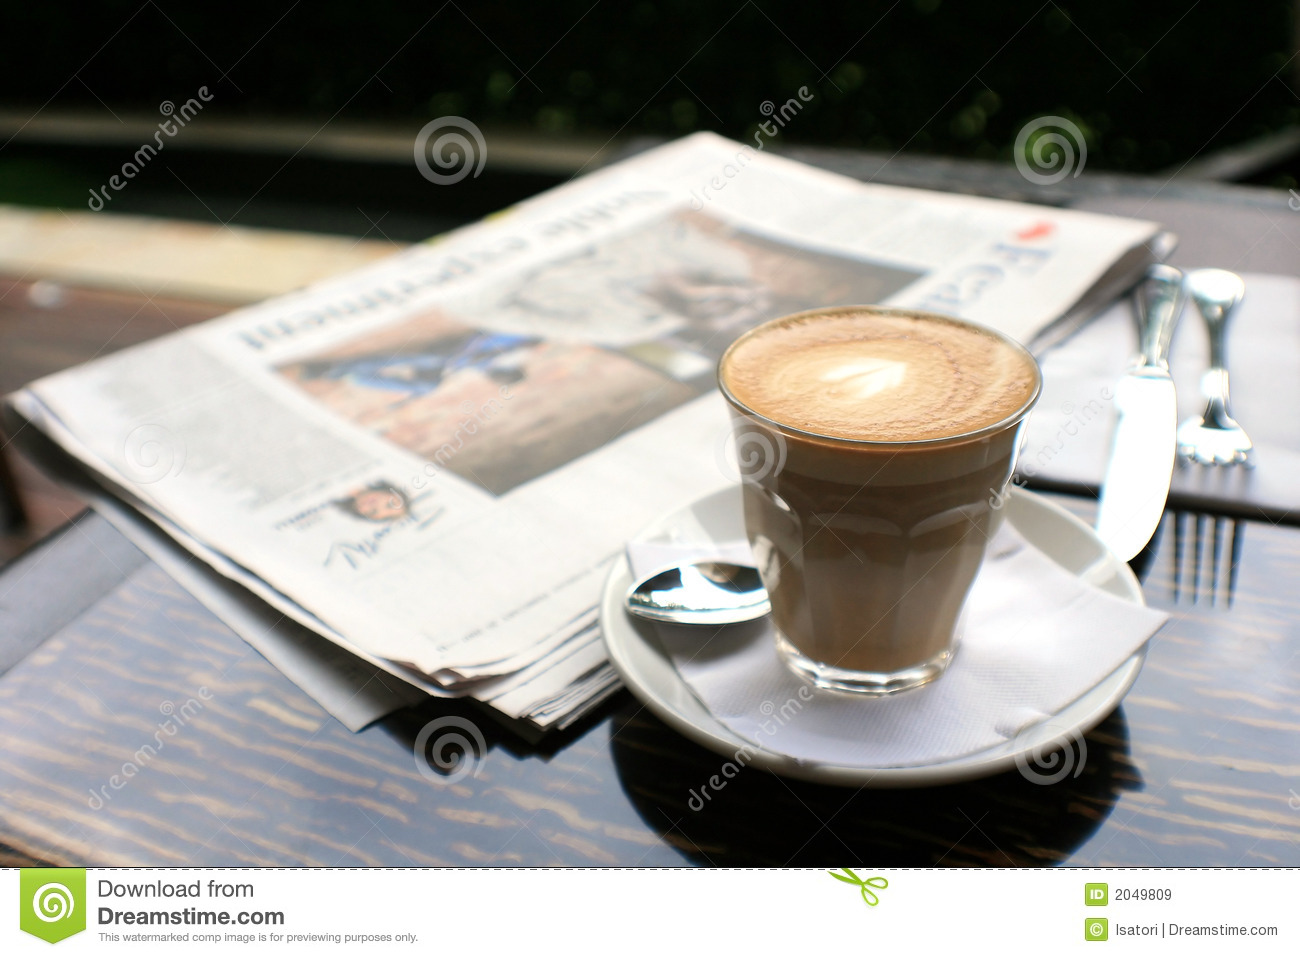 Cup Of Coffee With News Paper On Table Royalty Free Stock  : cup coffee news paper table 2049809 from www.dreamstime.com size 1300 x 957 jpeg 251kB